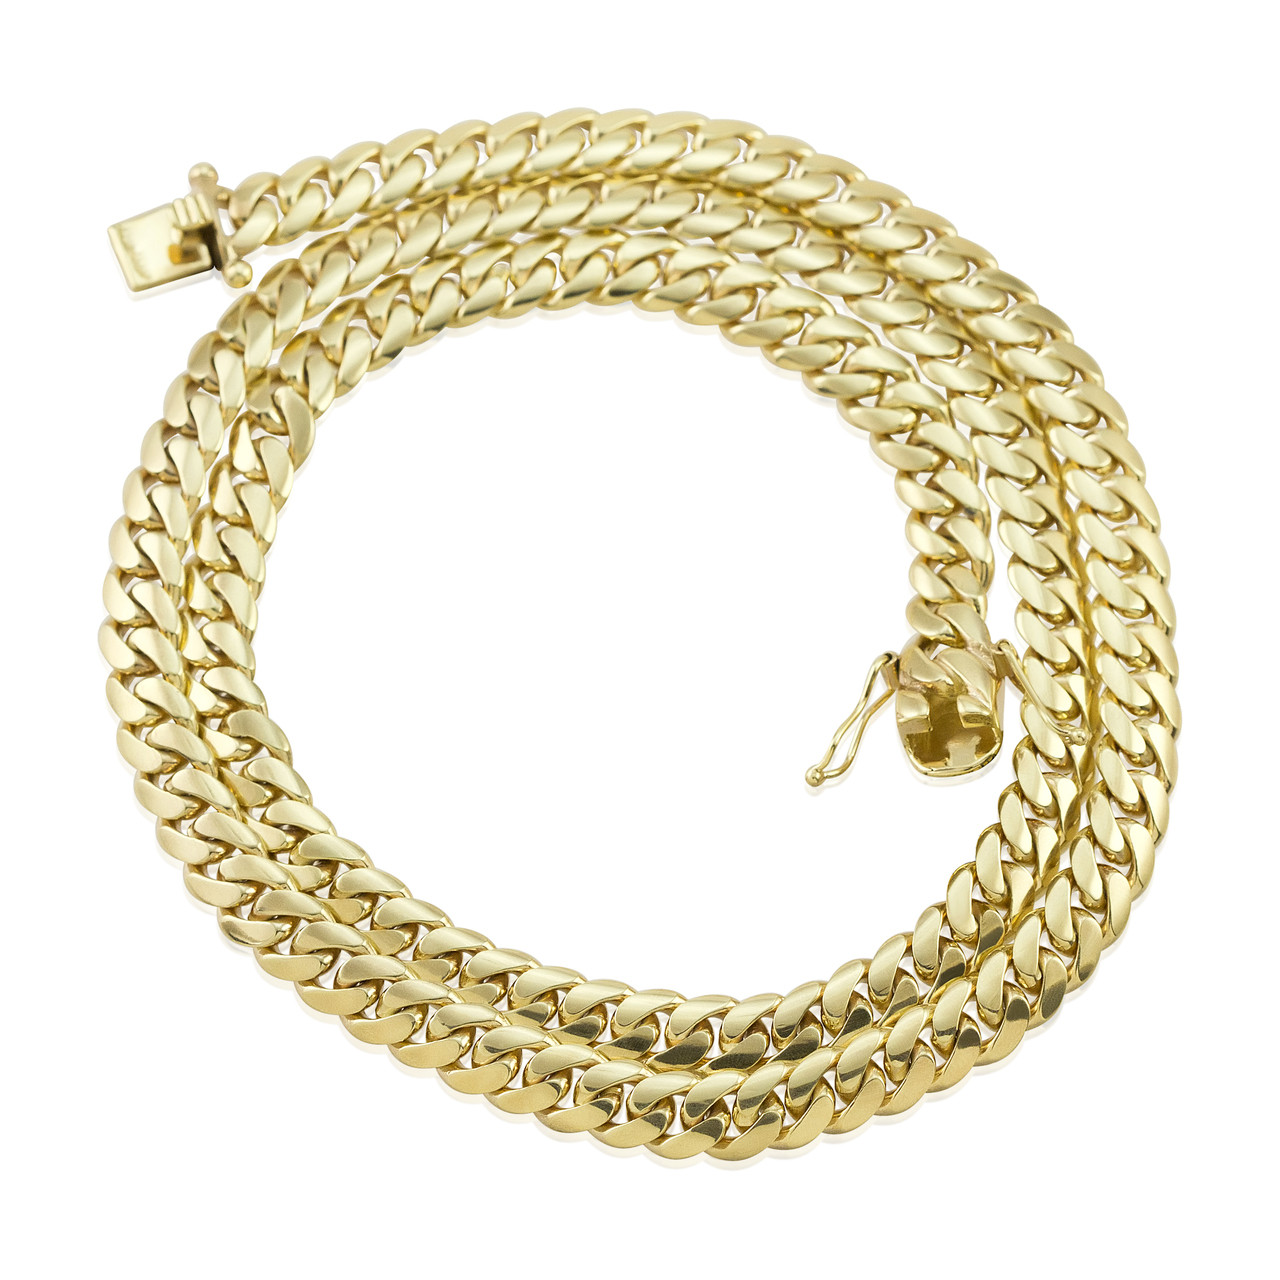 10k Gold Cuban Link Chain >> 10k Yellow Gold 9mm Miami Cuban Link Chain 30in